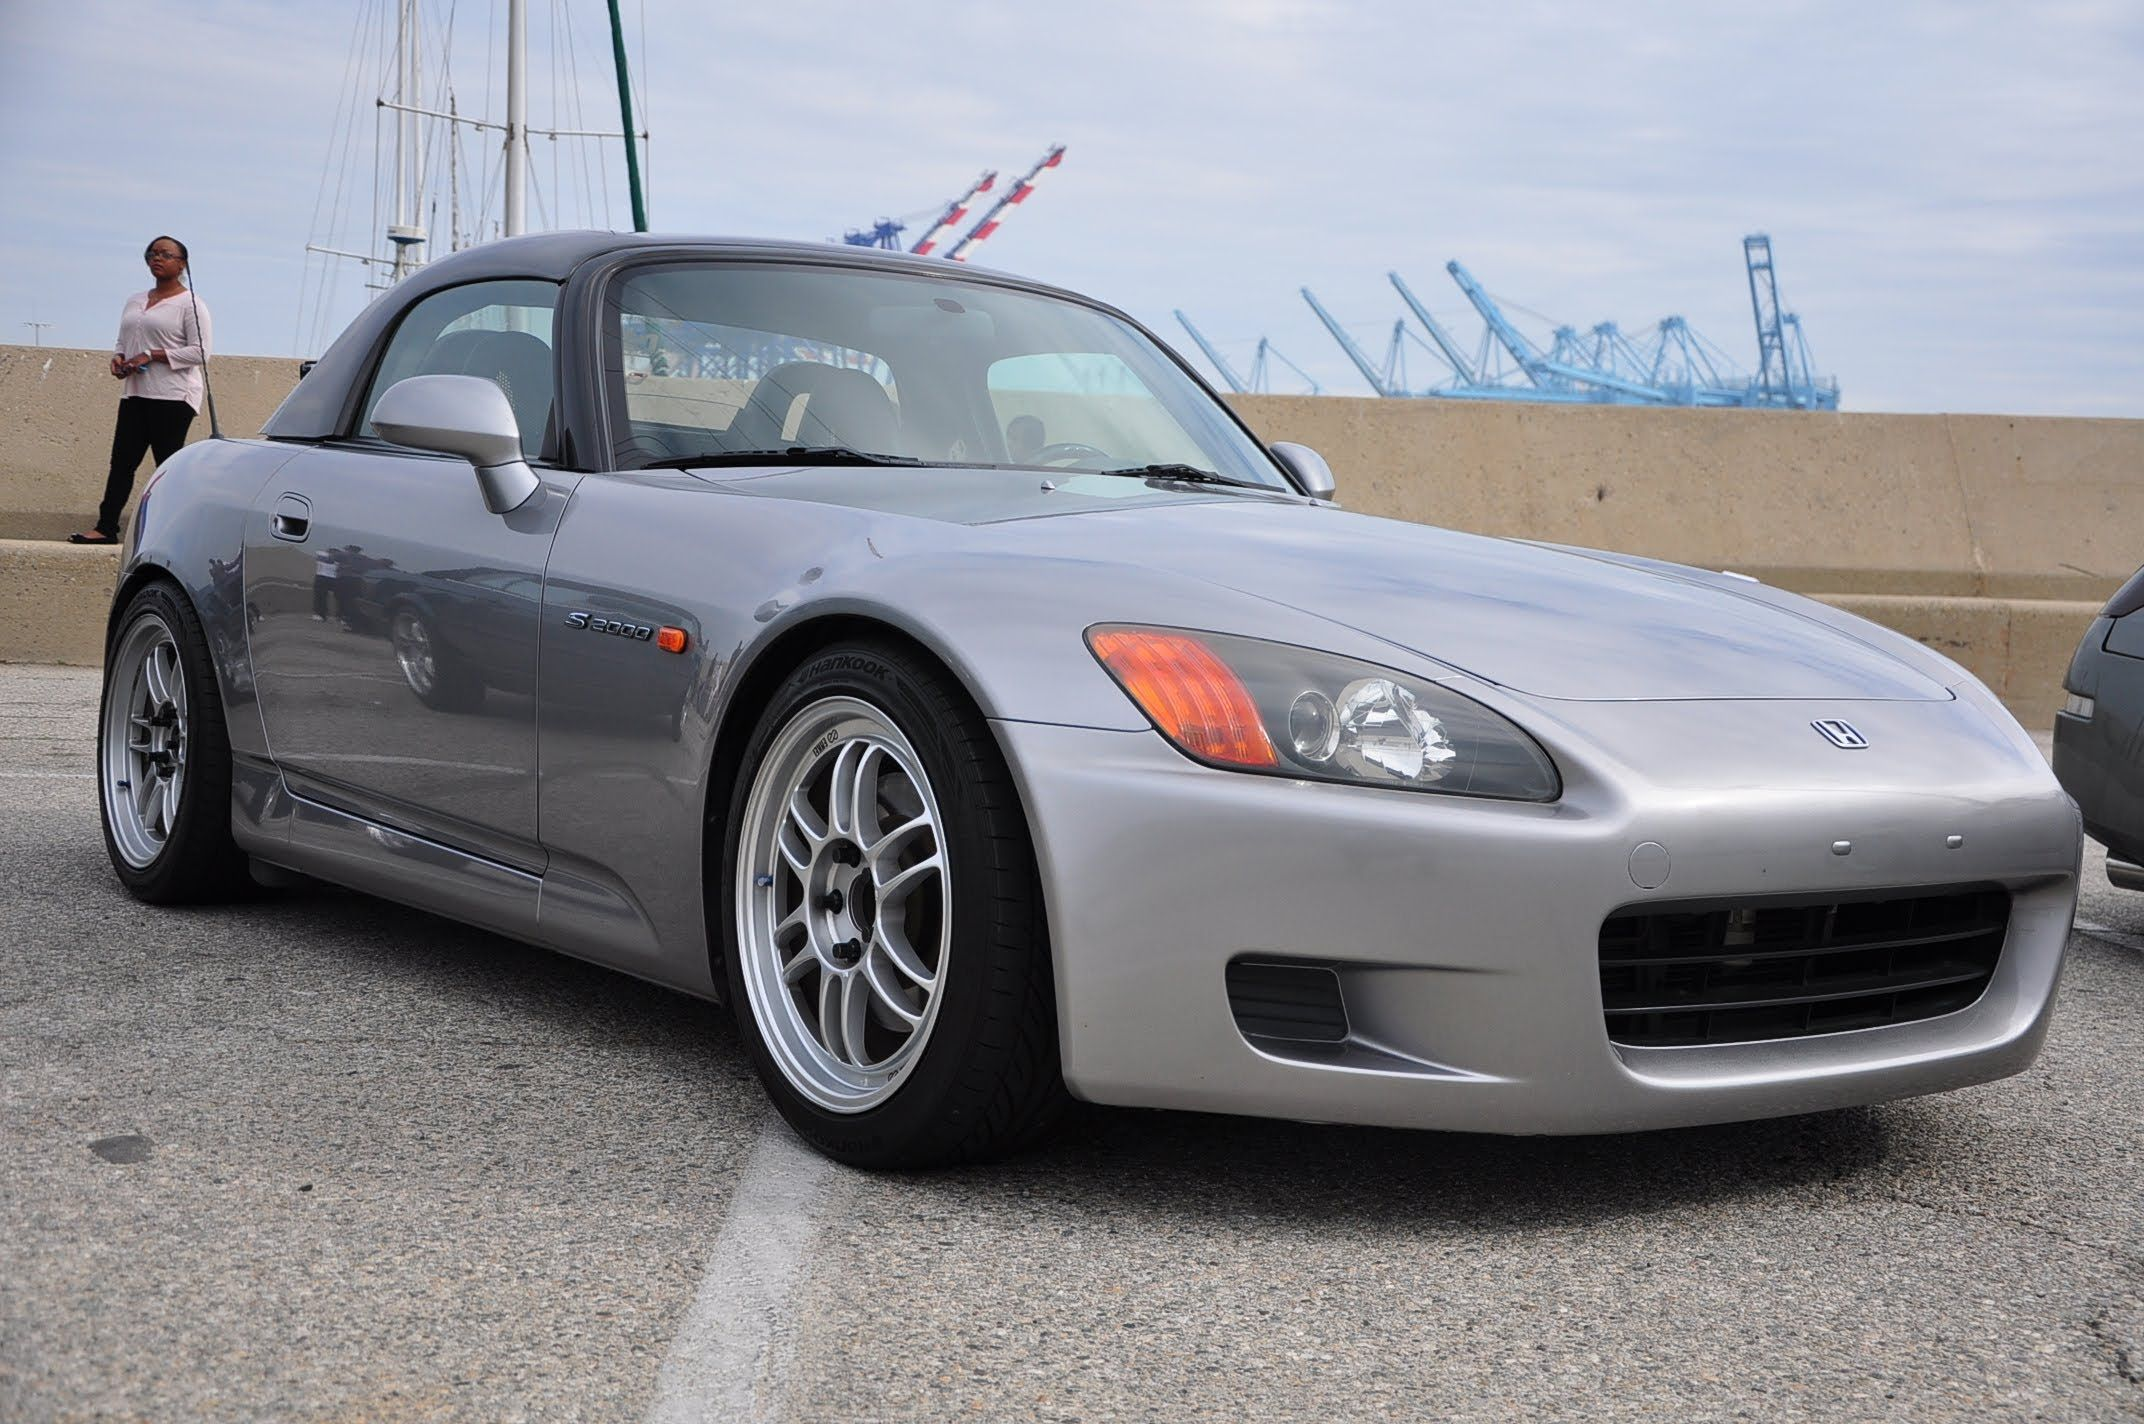 How To: Honda S2000 Hardtop Window Seal Installation